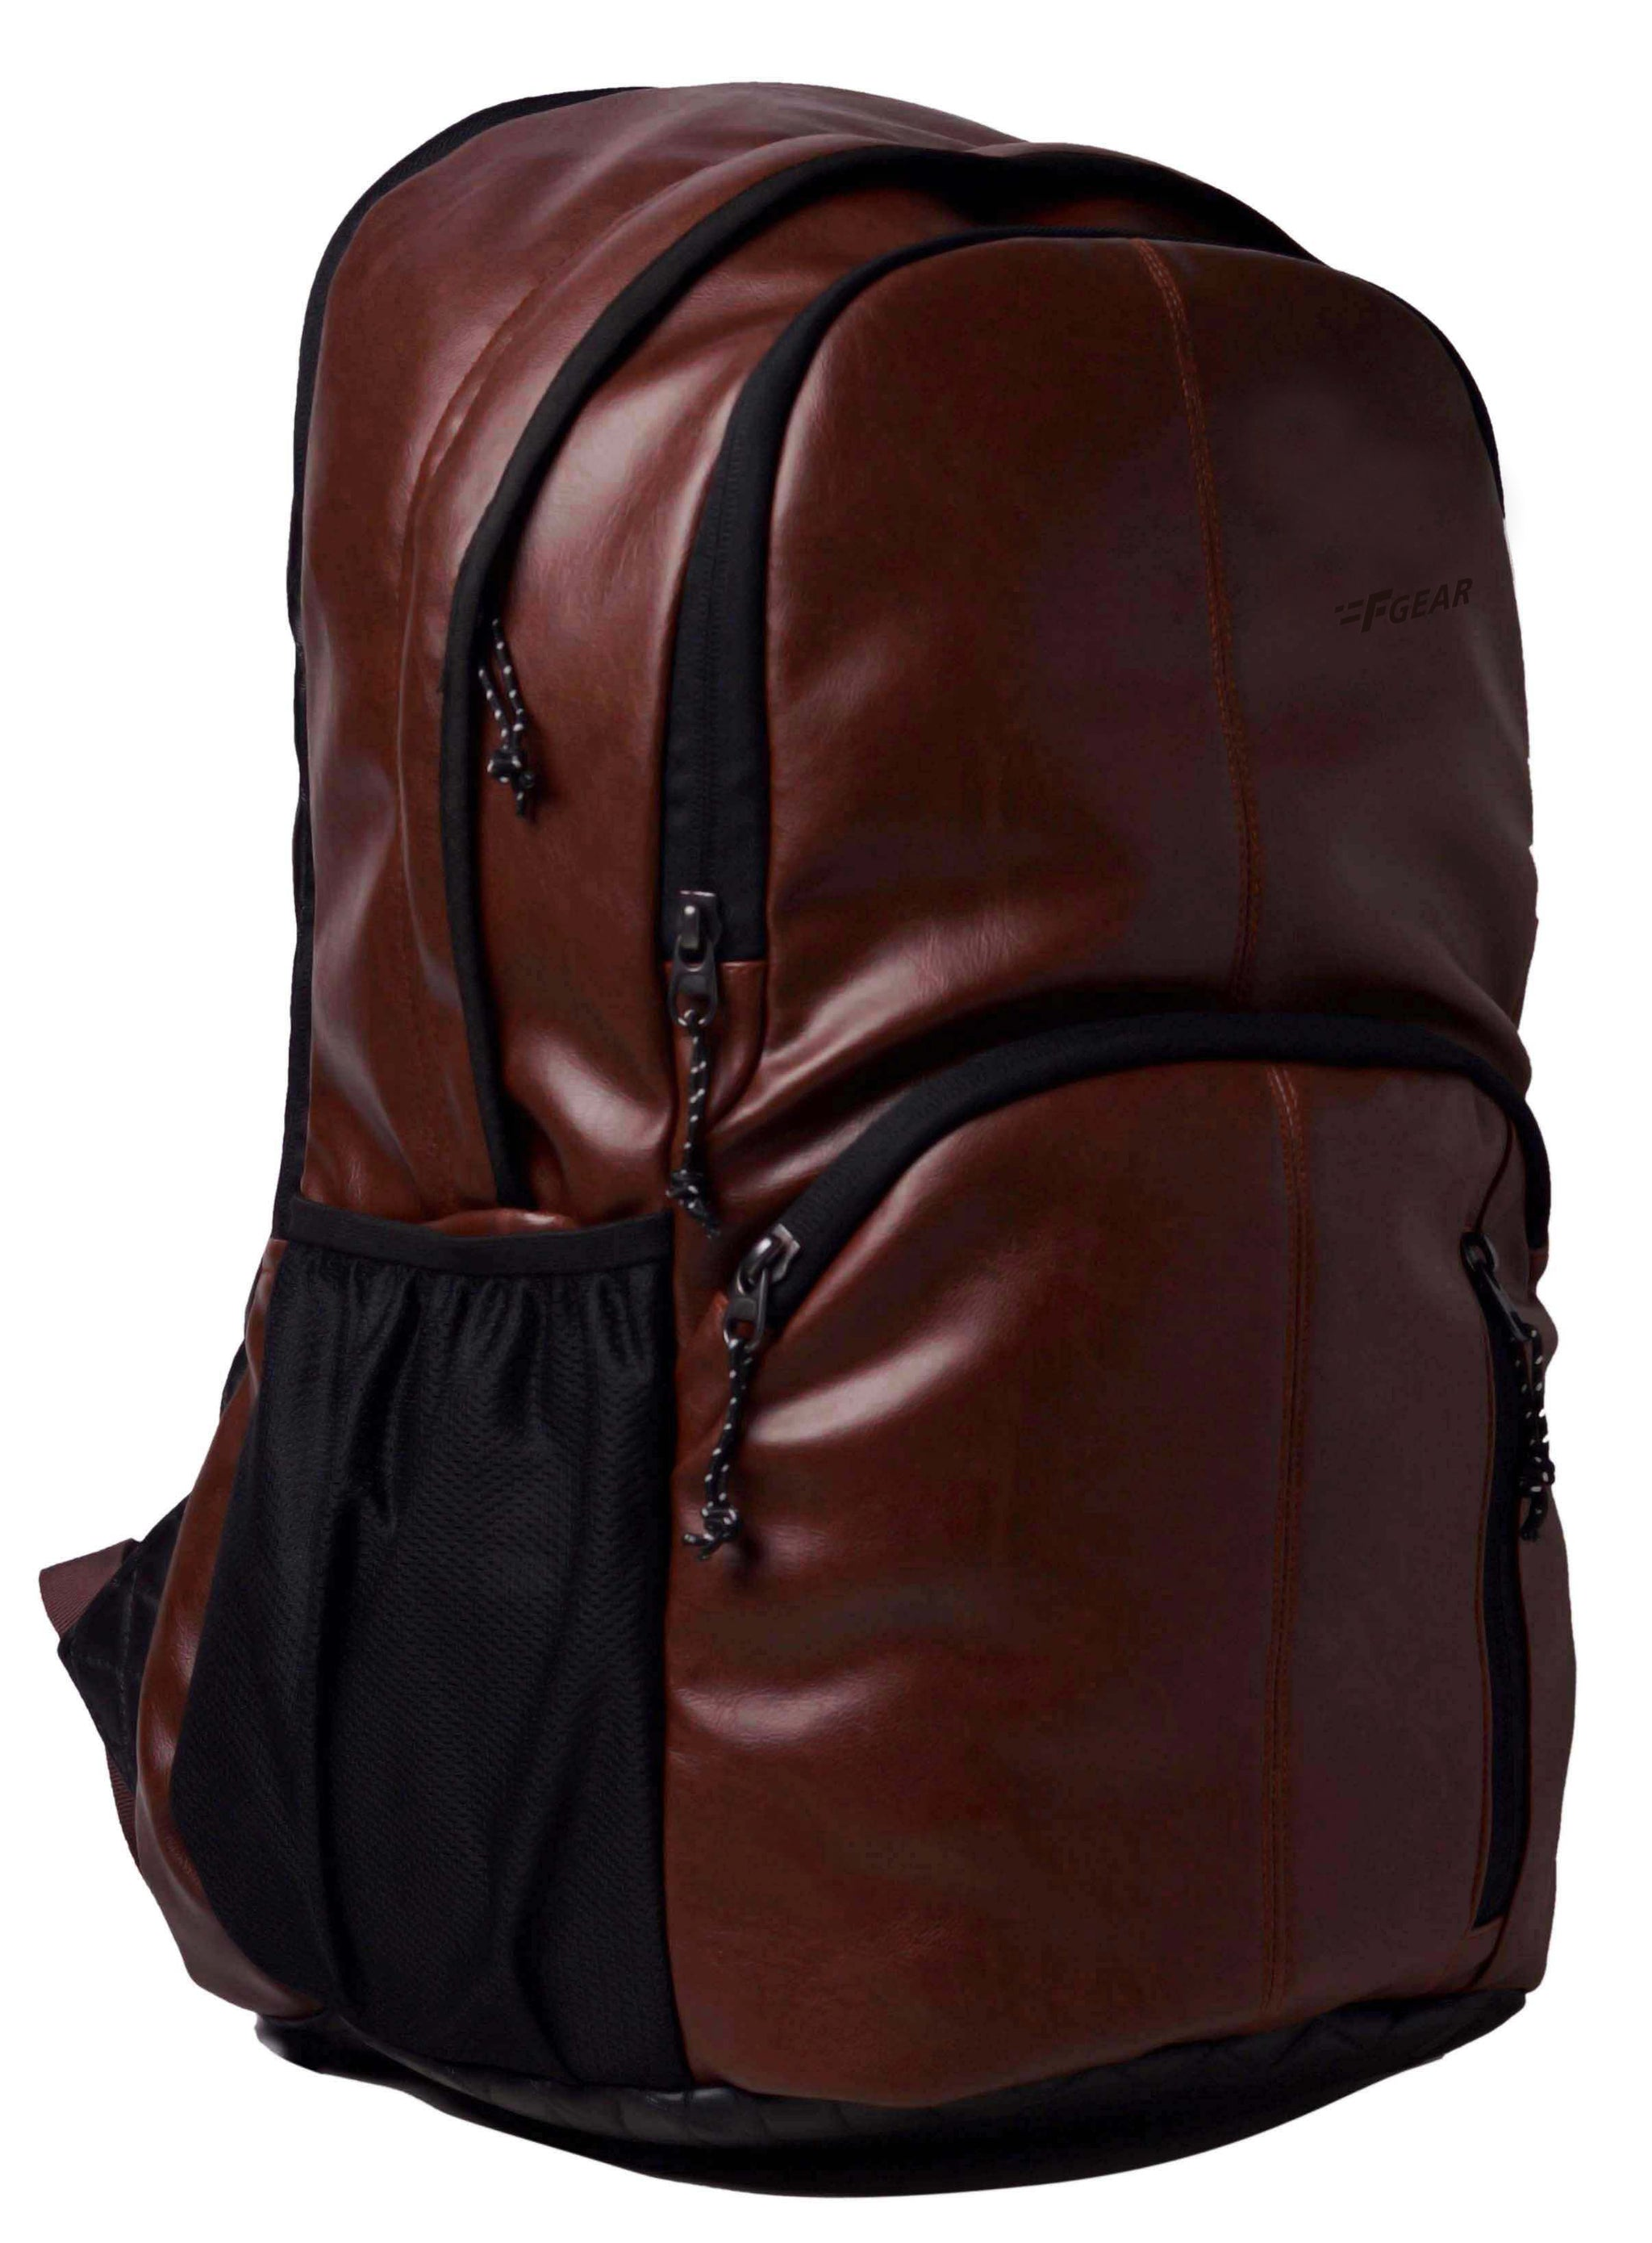 F Gear Tandrum V2 28 Liters Brown Artificial Leather Laptop Backpack (2587)